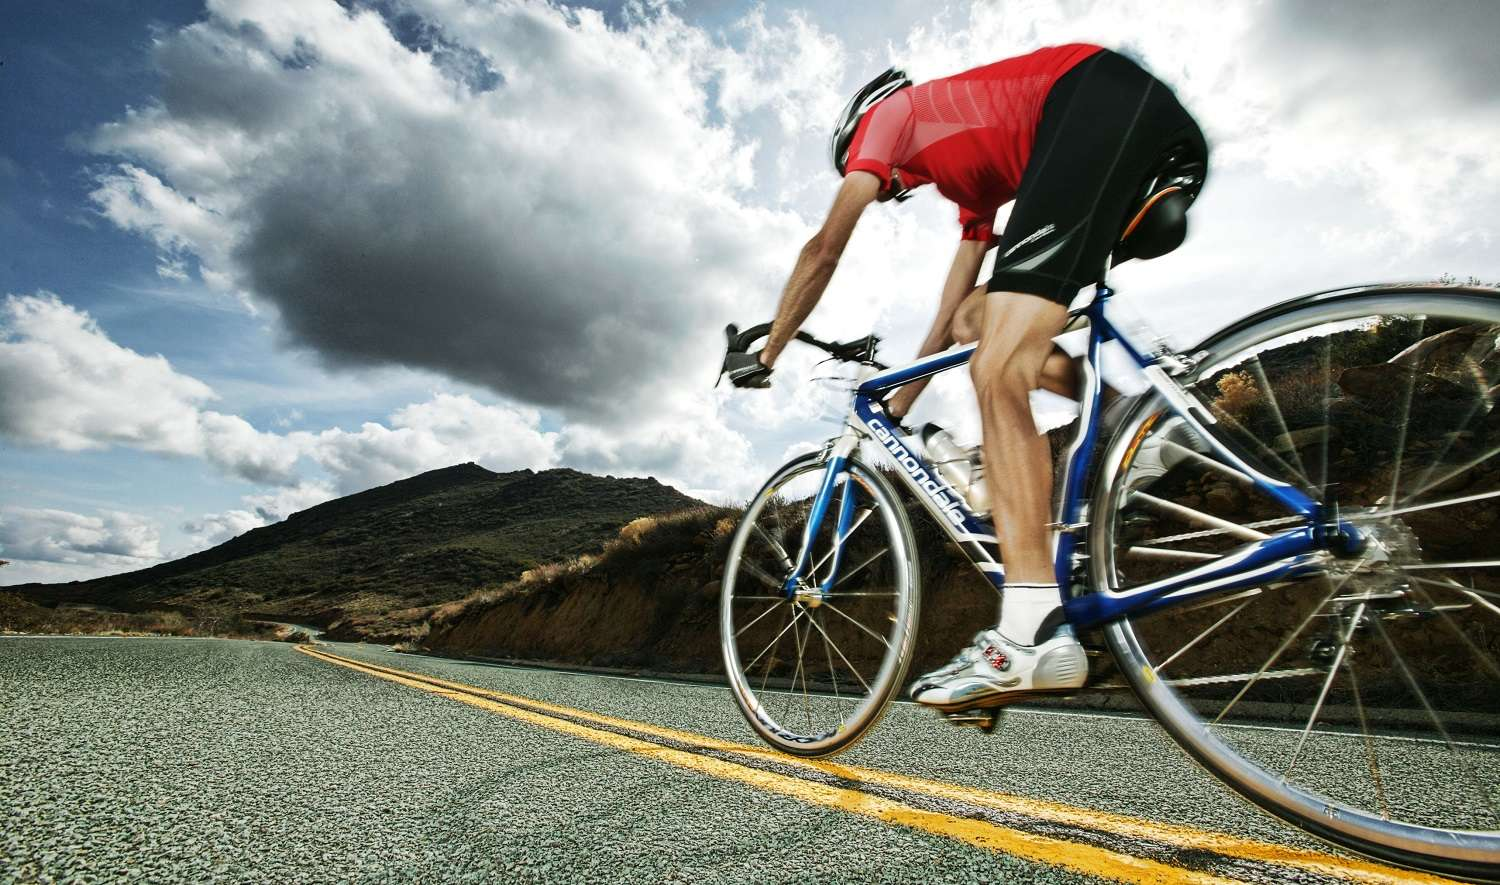 For top comfort on all your rides you need a fine pair of cycling shorts!